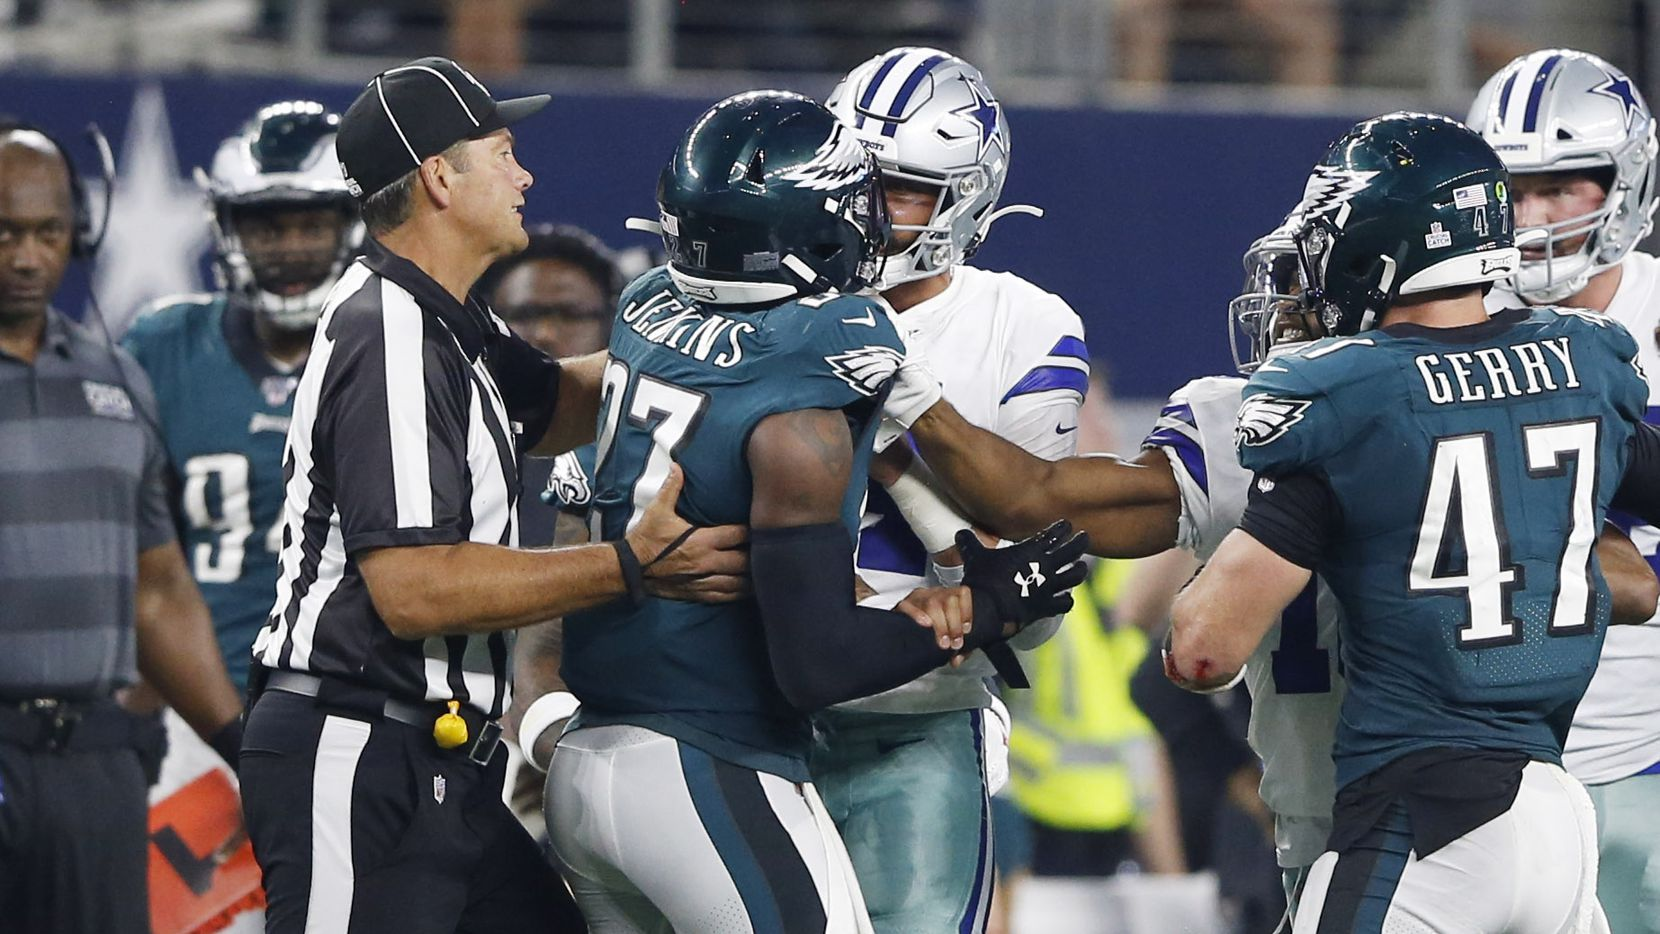 Dallas Cowboys quarterback Dak Prescott (4) gets into a argument with \Philadelphia Eagles strong safety Malcolm Jenkins (27) during the second half of play at AT&T Stadium in Arlington, Texas on Sunday, October 20, 2019. Dallas Cowboys defeated the Philadelphia Eagles 37-10. (Vernon Bryant/The Dallas Morning News)